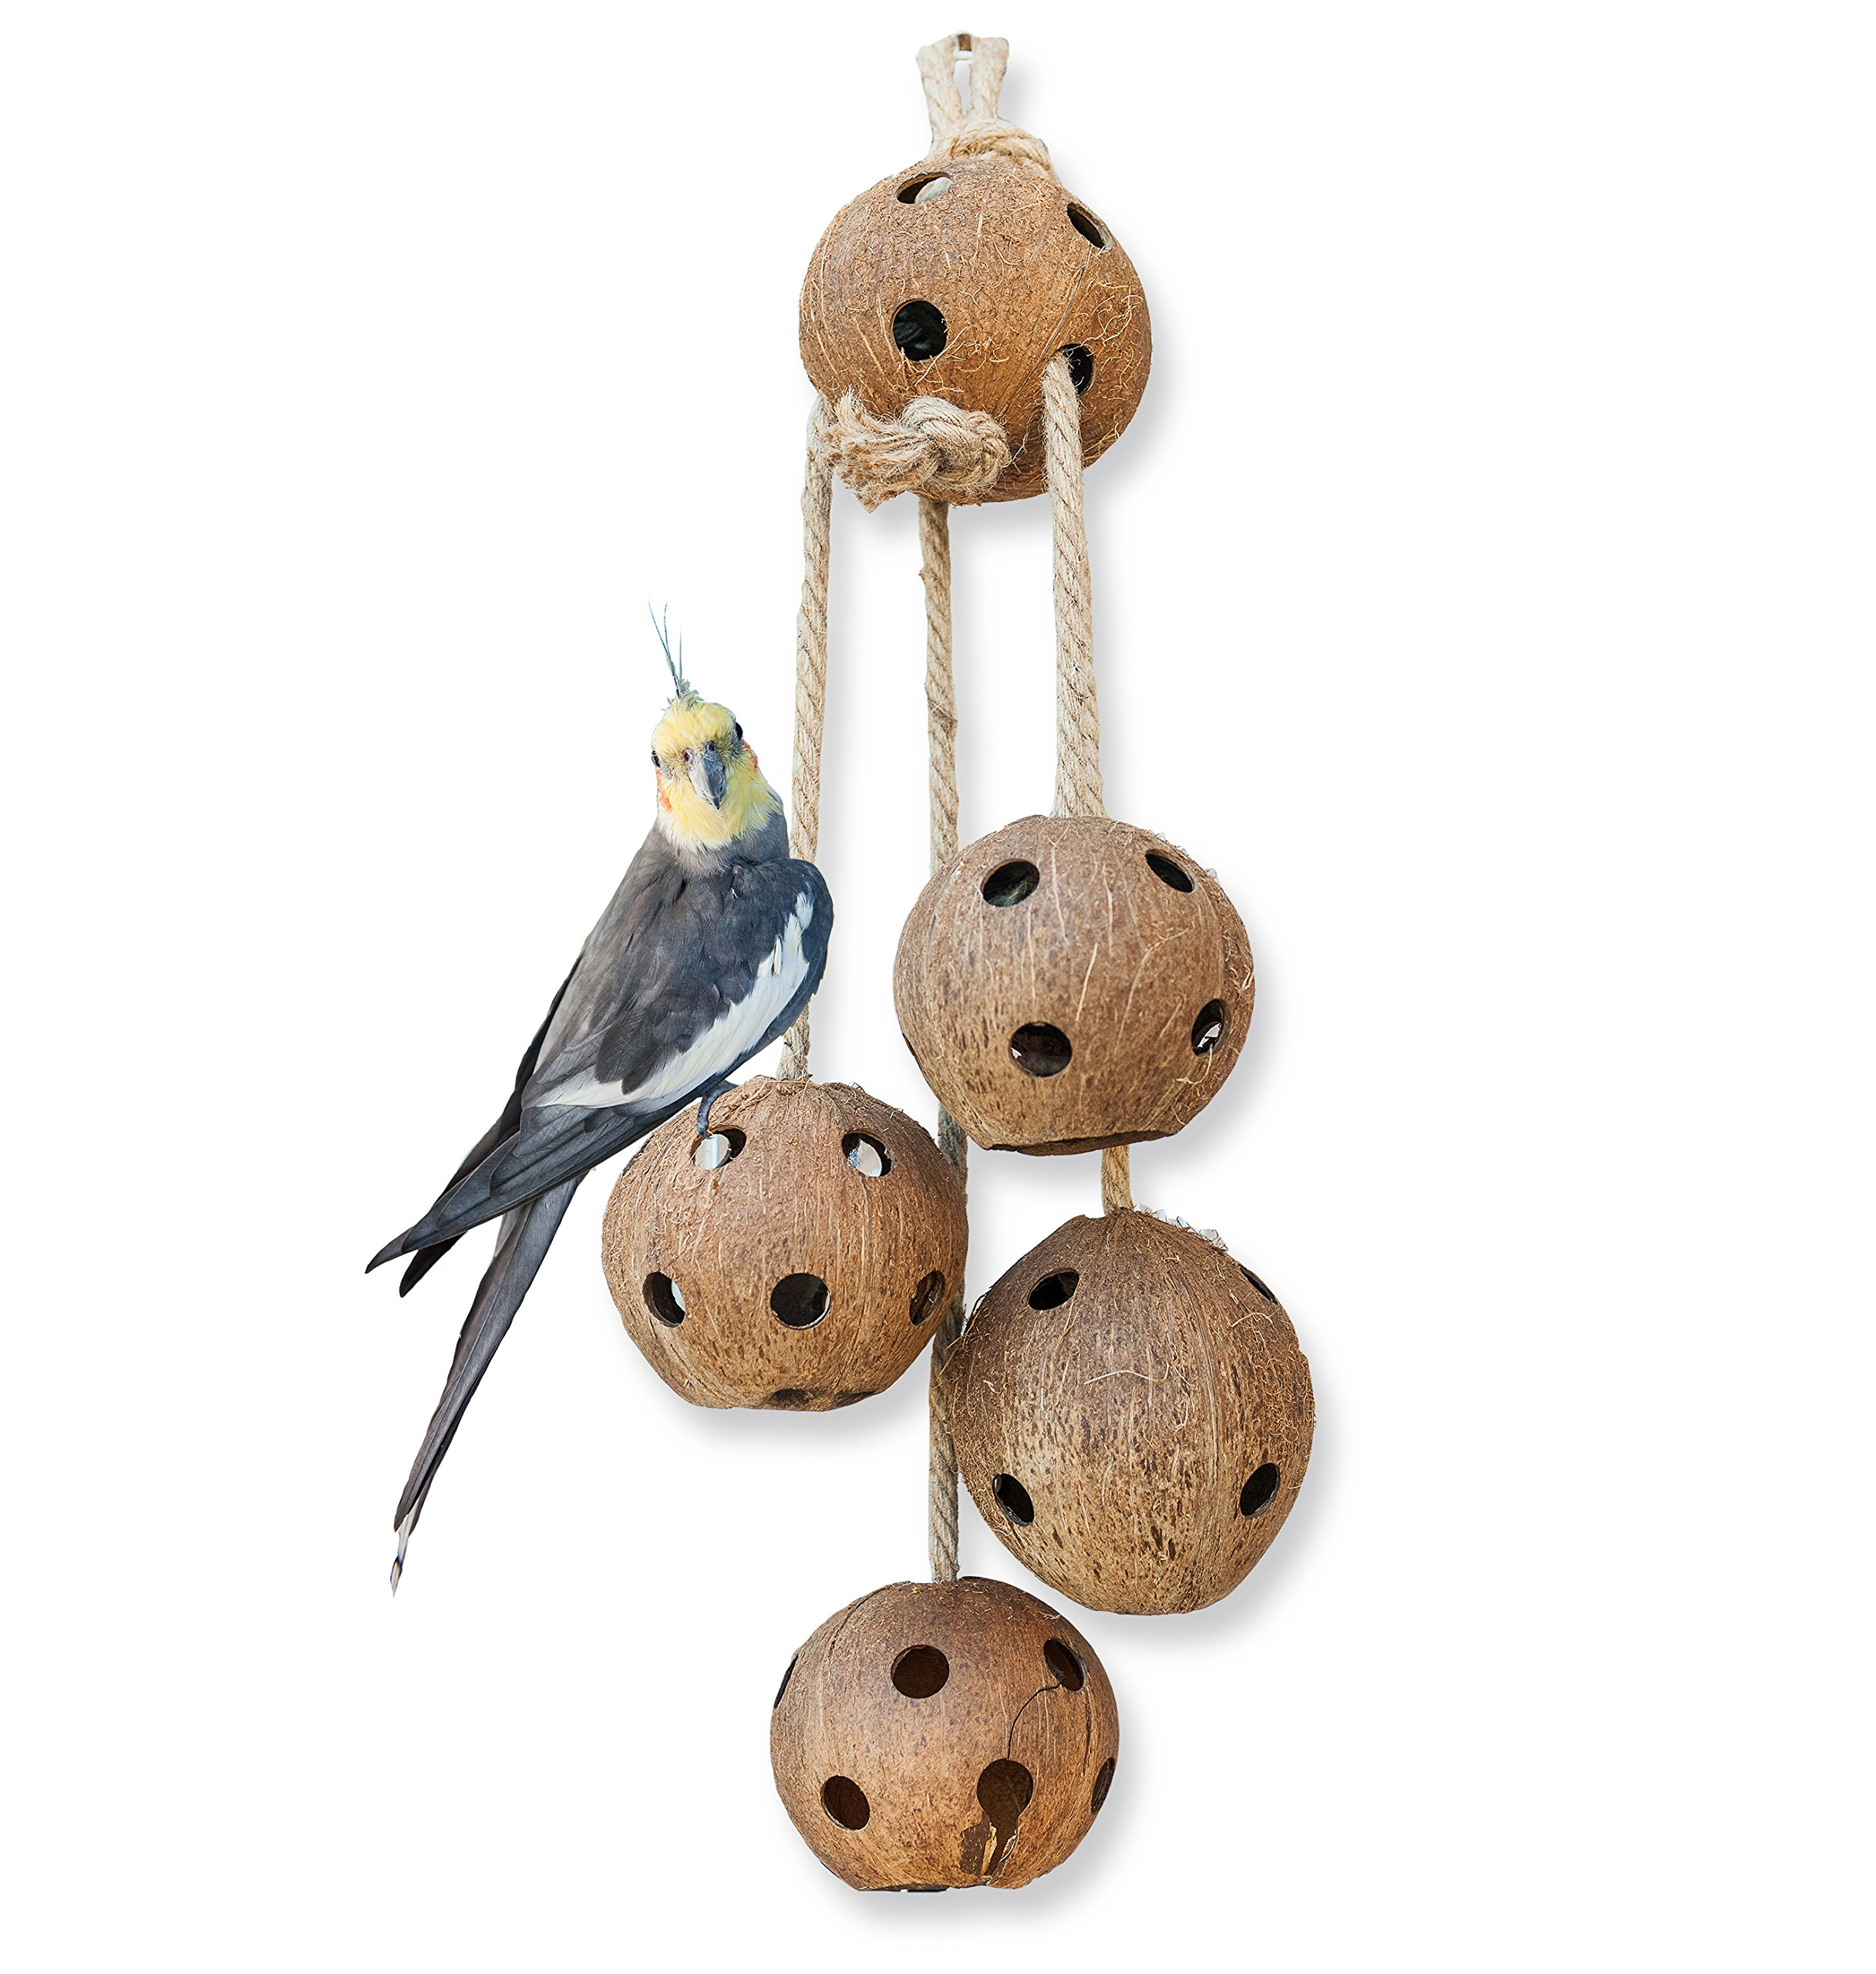 Pet Magasin Hand Made Bird Toys - Interactive Large Coconut Shell for Birds of All Kinds